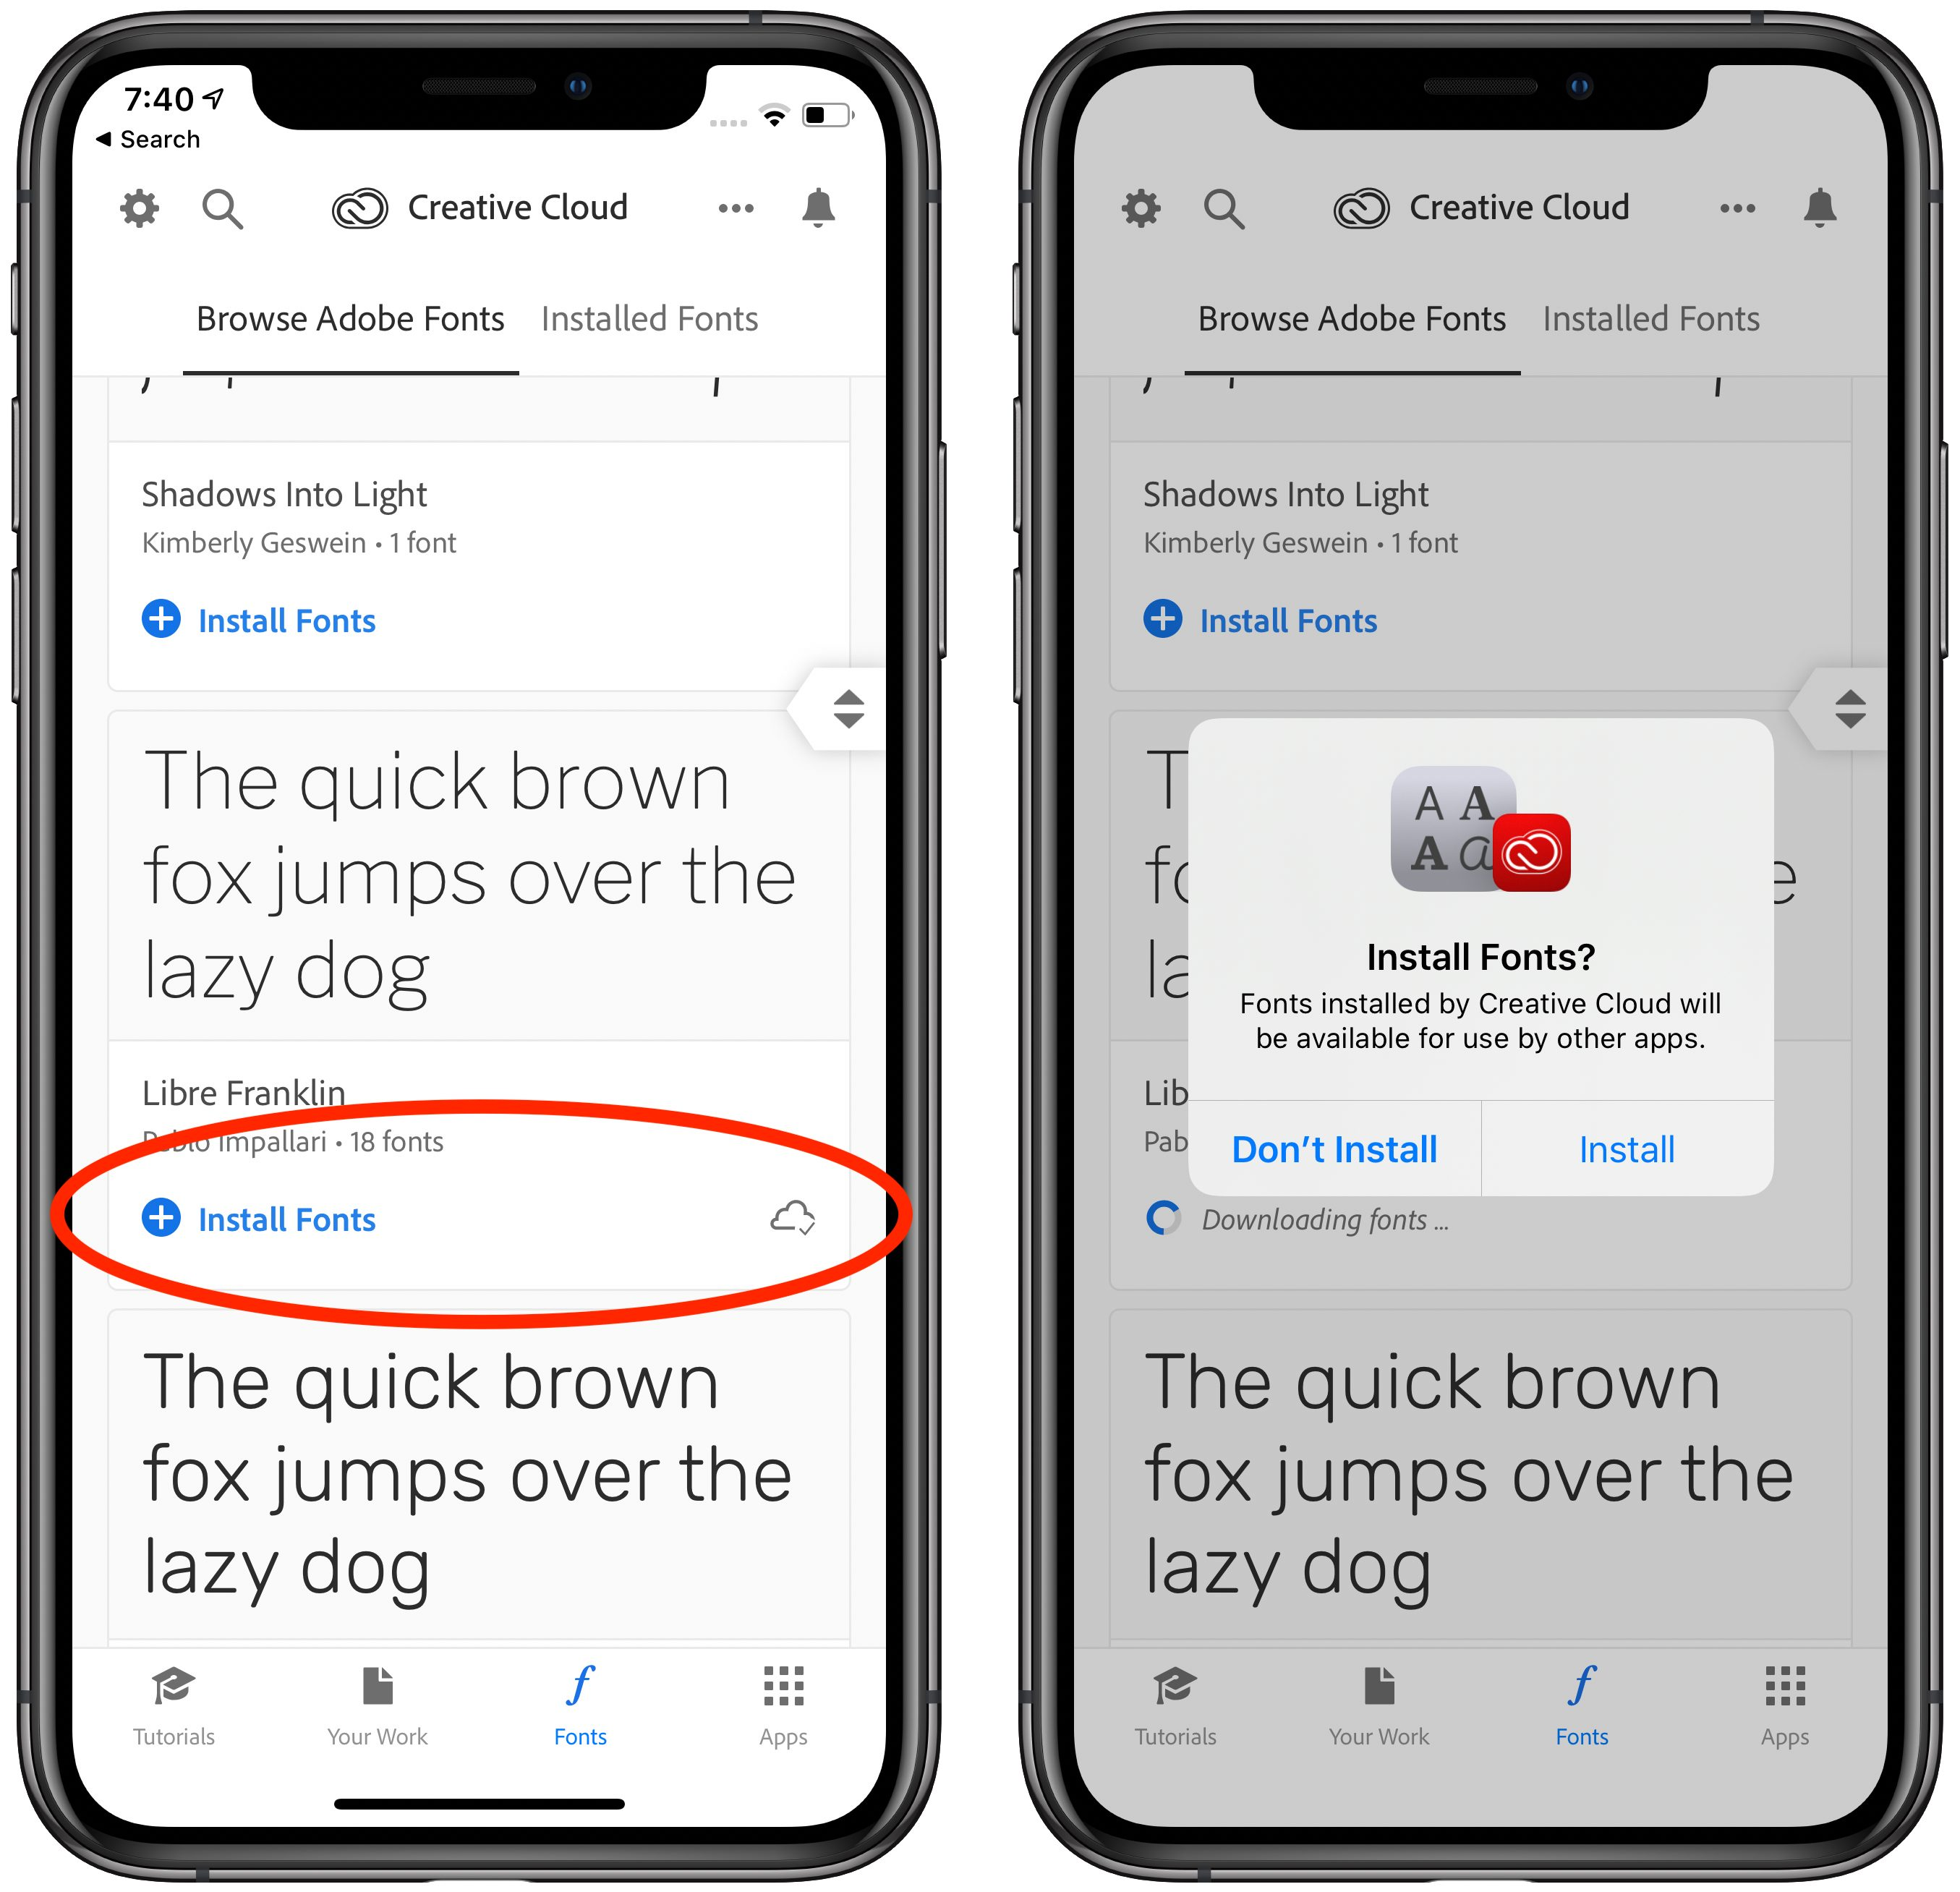 Adobe Releases Free Fonts for iOS - TidBITS